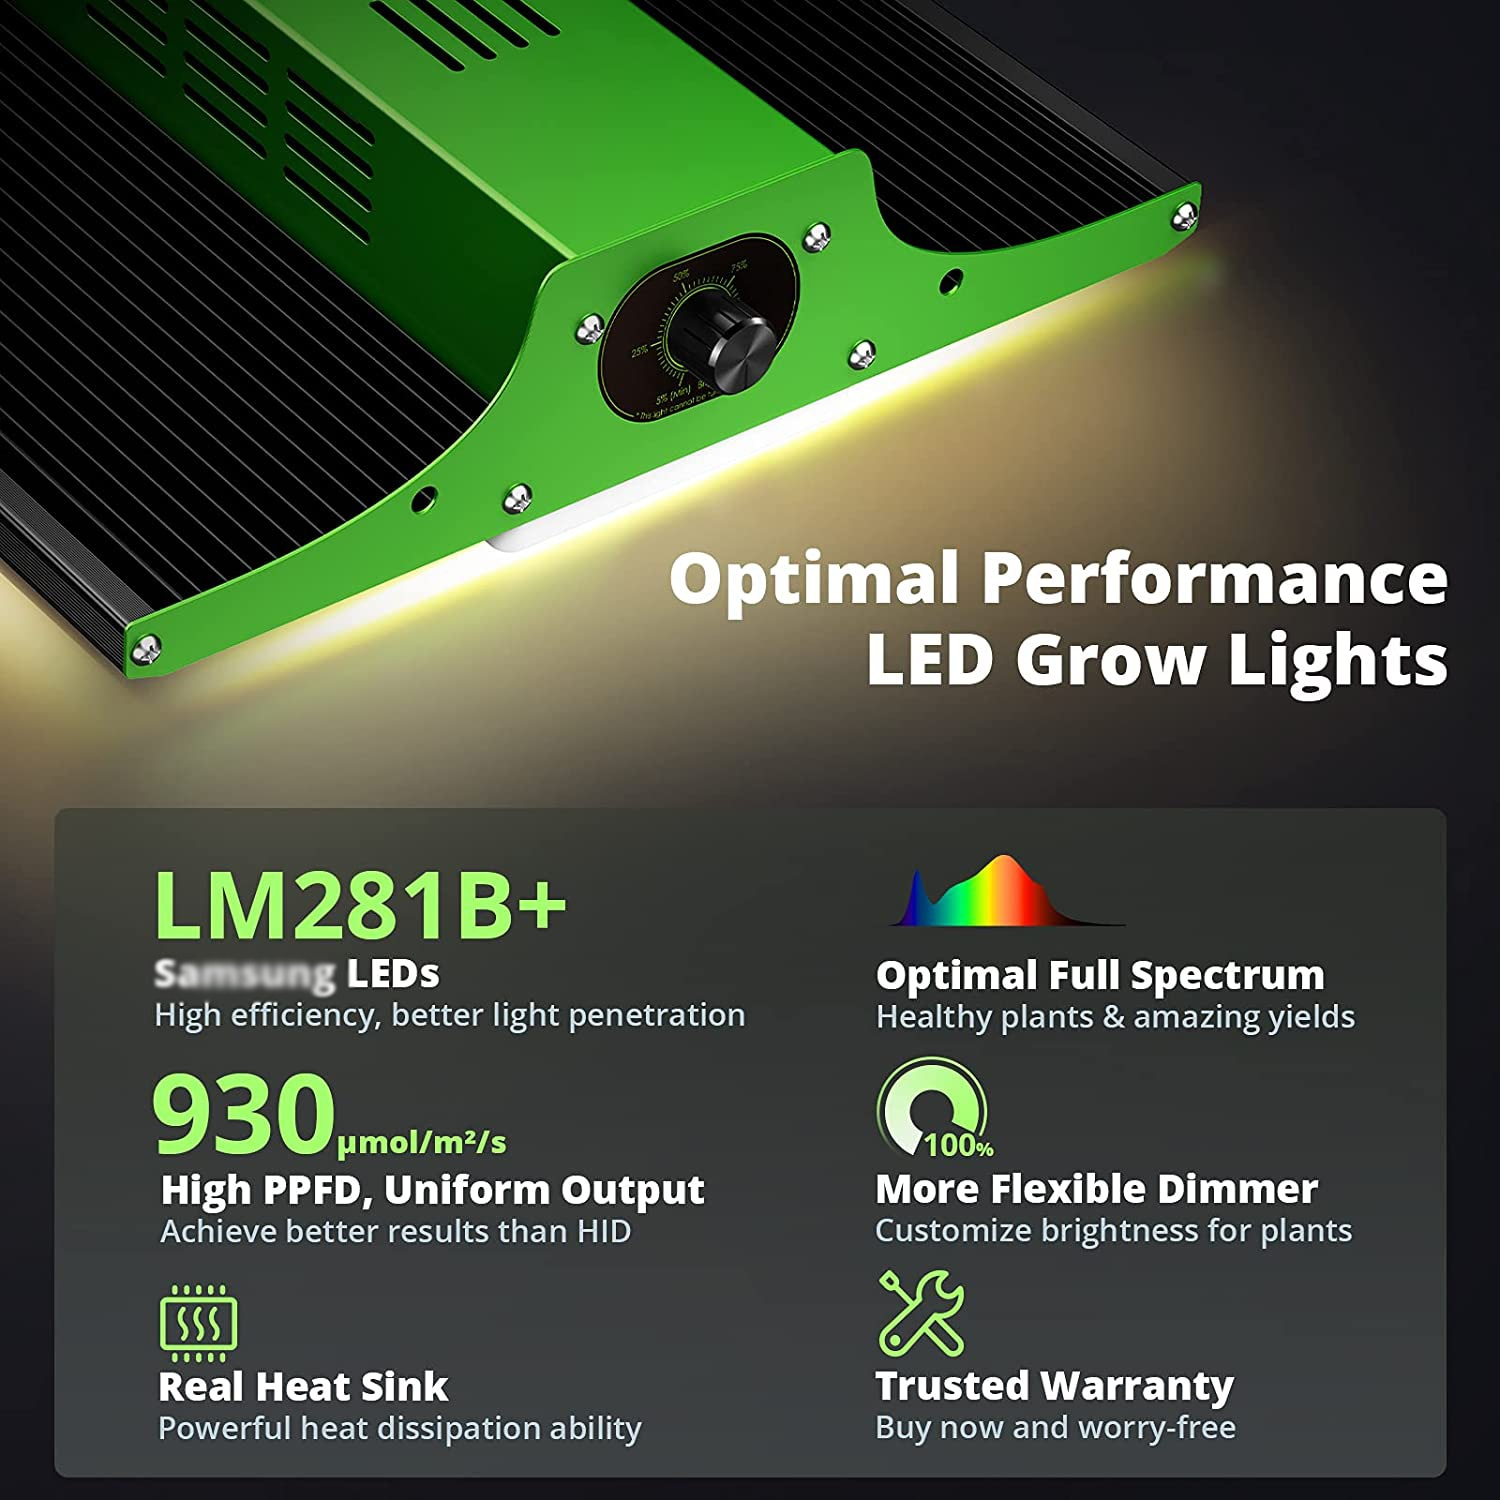 LED Grow Light, ZFR 600 LED Grow Light with SAMSUNG LM301B LEDs (Includes IR) 2x2ft Coverage, Full Spectrum Dimmable Led Bloom enlarge